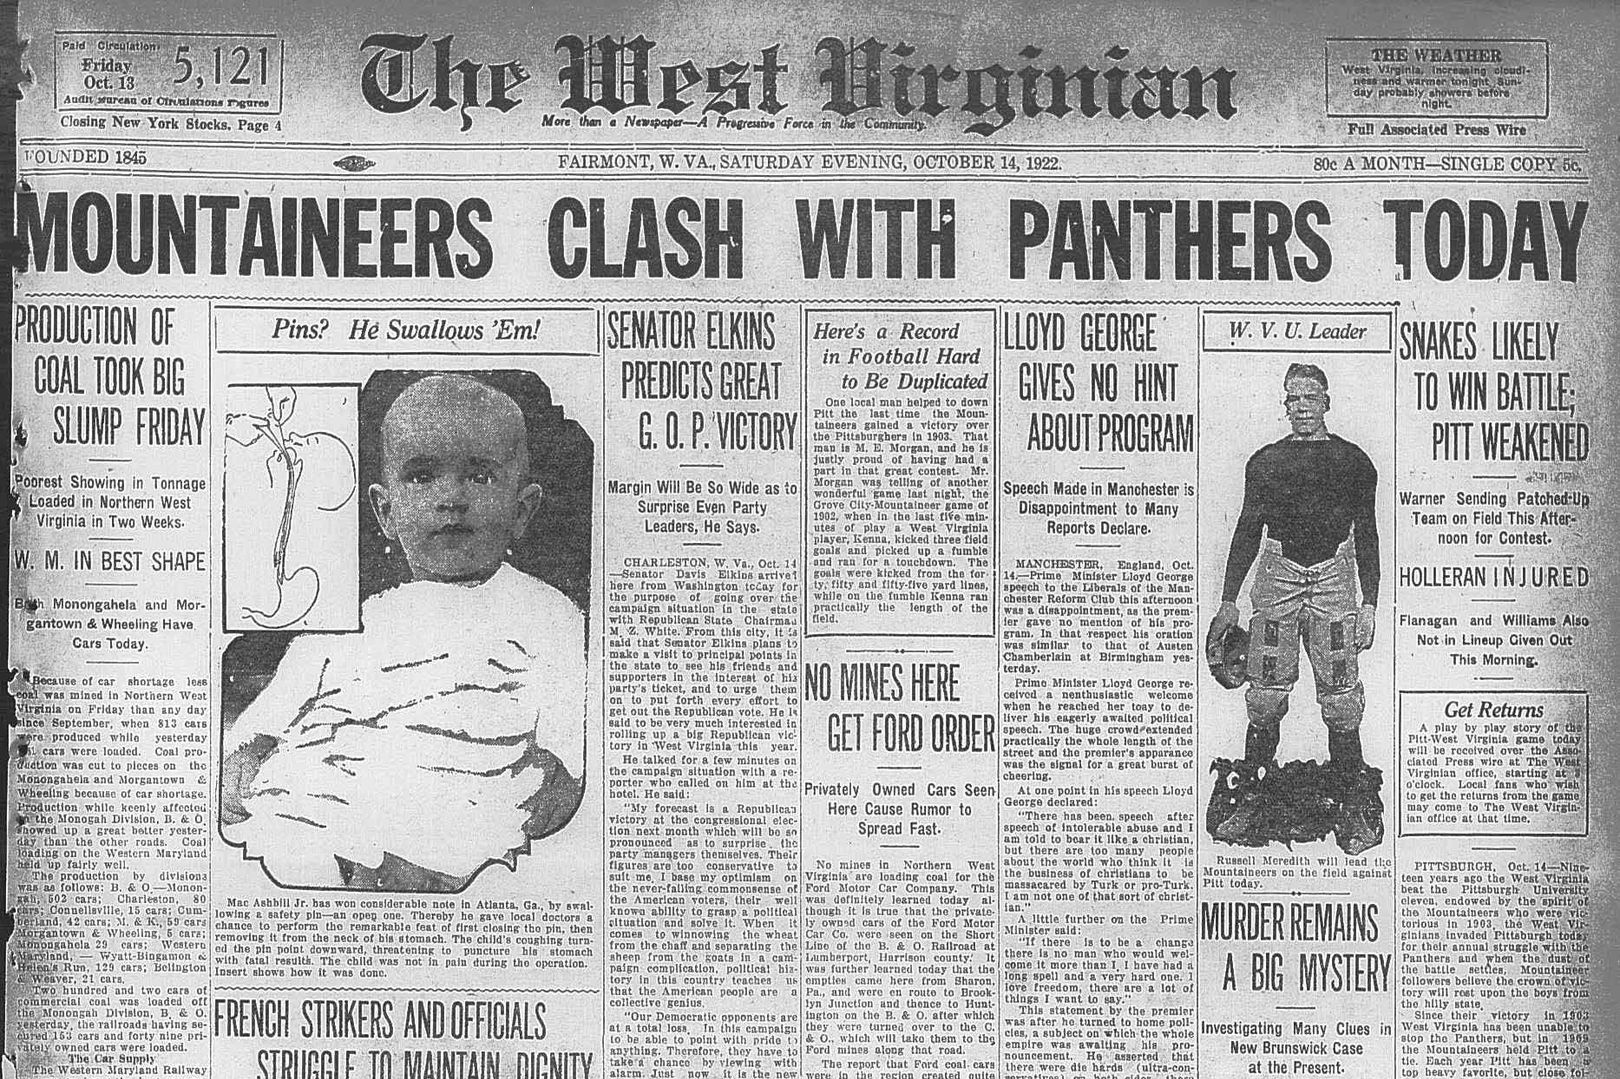 """Front page of the West Virginian, Oct. 14, 1922. Headline reads """"Mountaineers clash with panthers today""""."""